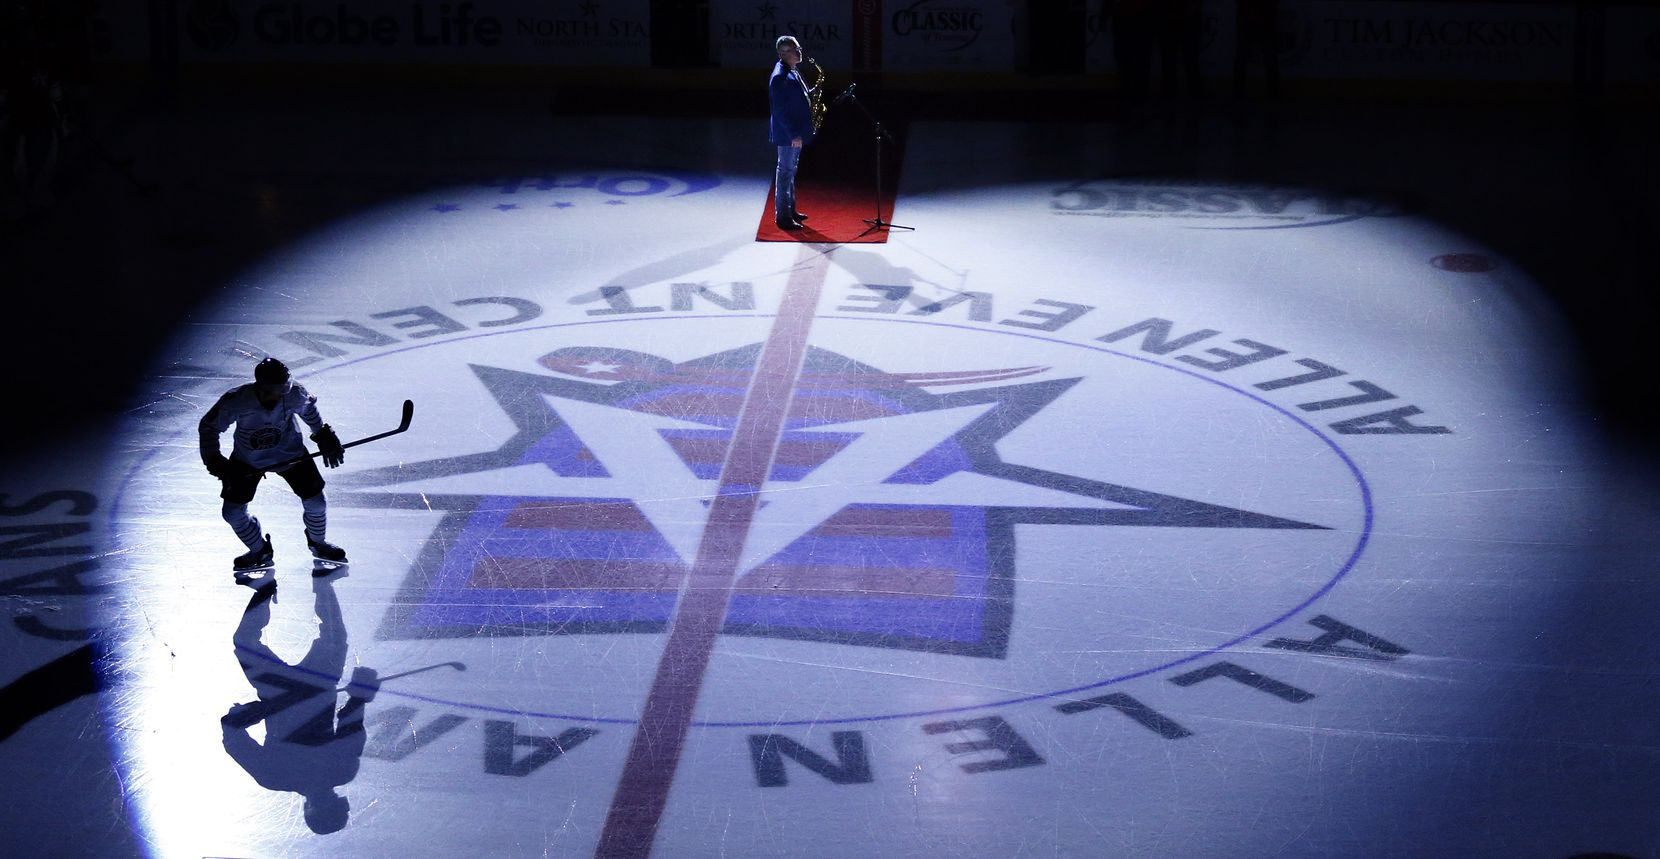 A Rapid City Rush hockey player takes the ice under the spotlights as a saxophonist prepares for the national anthem before the Allen Americans game  at the Allen Event Center in Allen, Texas, Friday, December 18, 2020. This is the first professional hockey game in the metroplex since March. (Tom Fox/The Dallas Morning News)